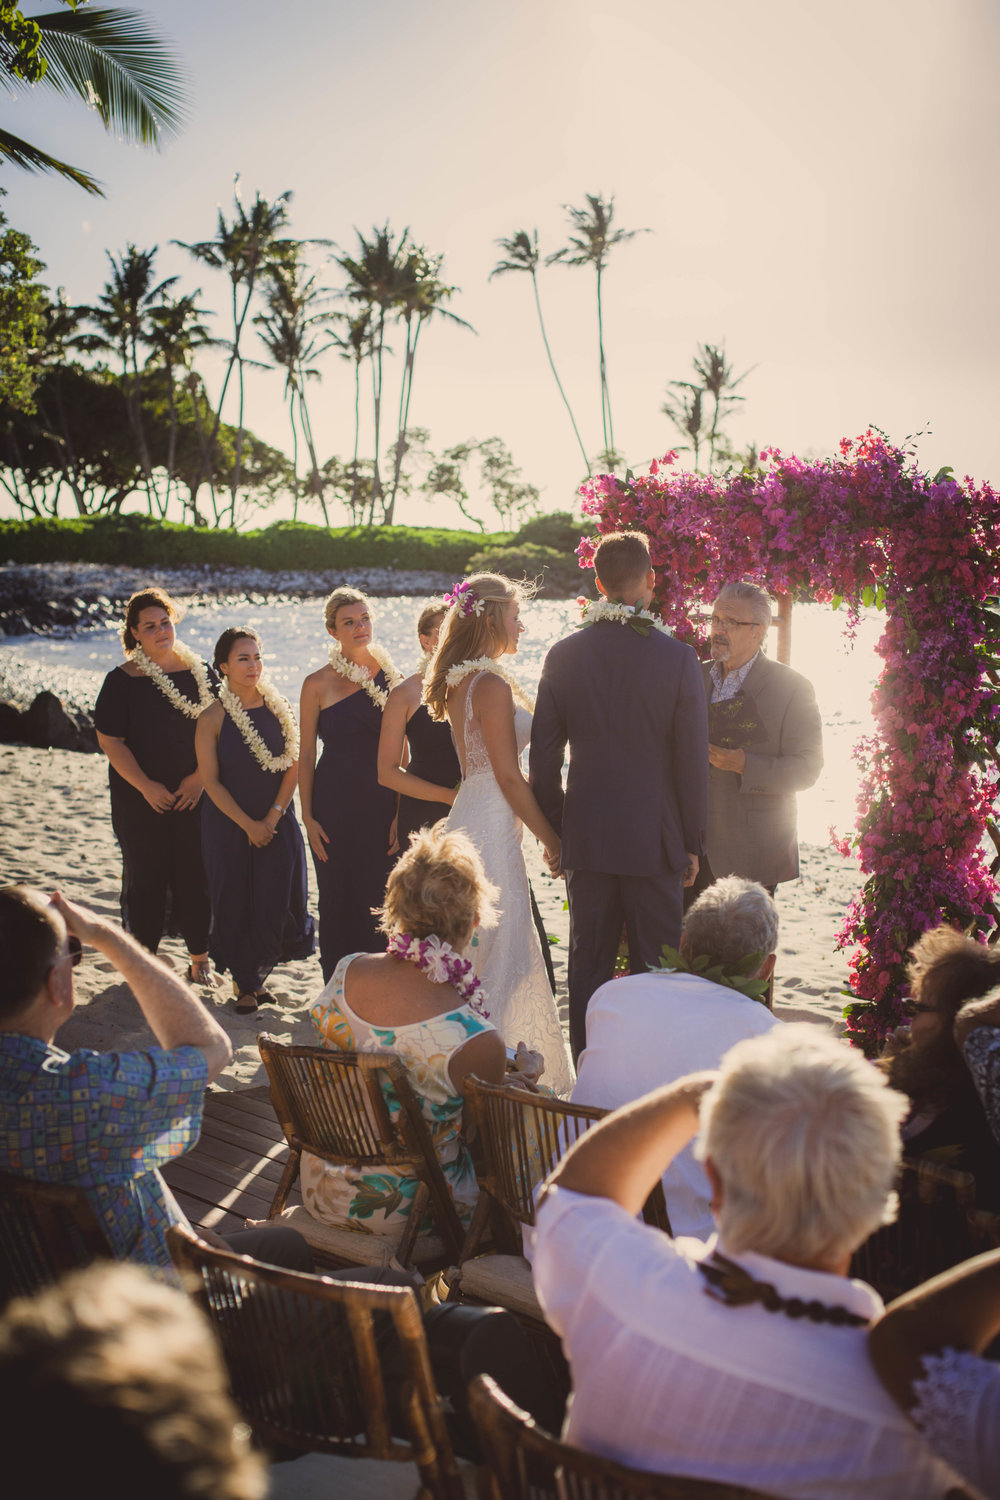 big island hawaii fairmont orchid beach wedding © kelilina photography 20170812173921-1.jpg